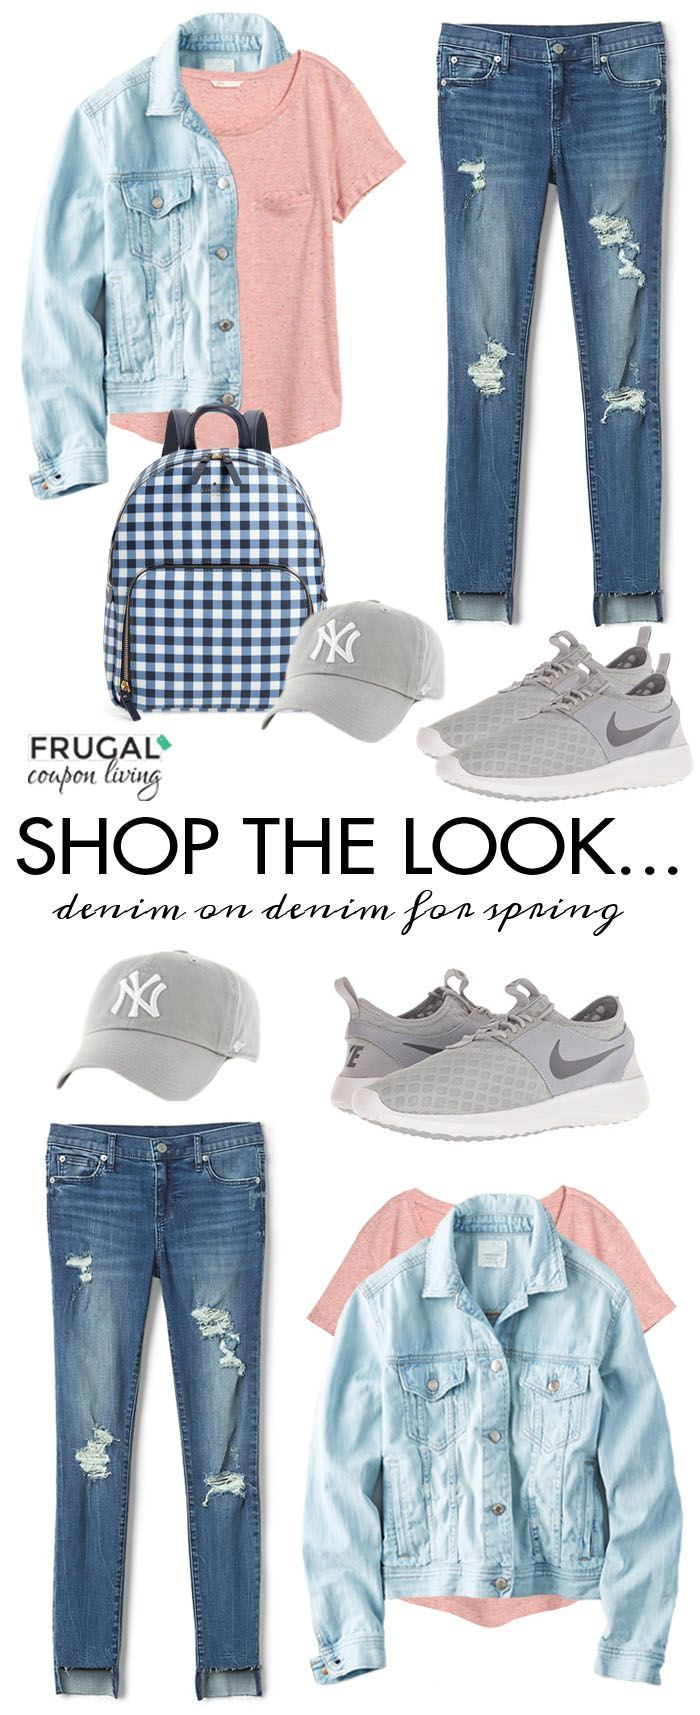 It's anotherFrugal Fashion Friday. This week we focus on a Denim on Denim Outf...